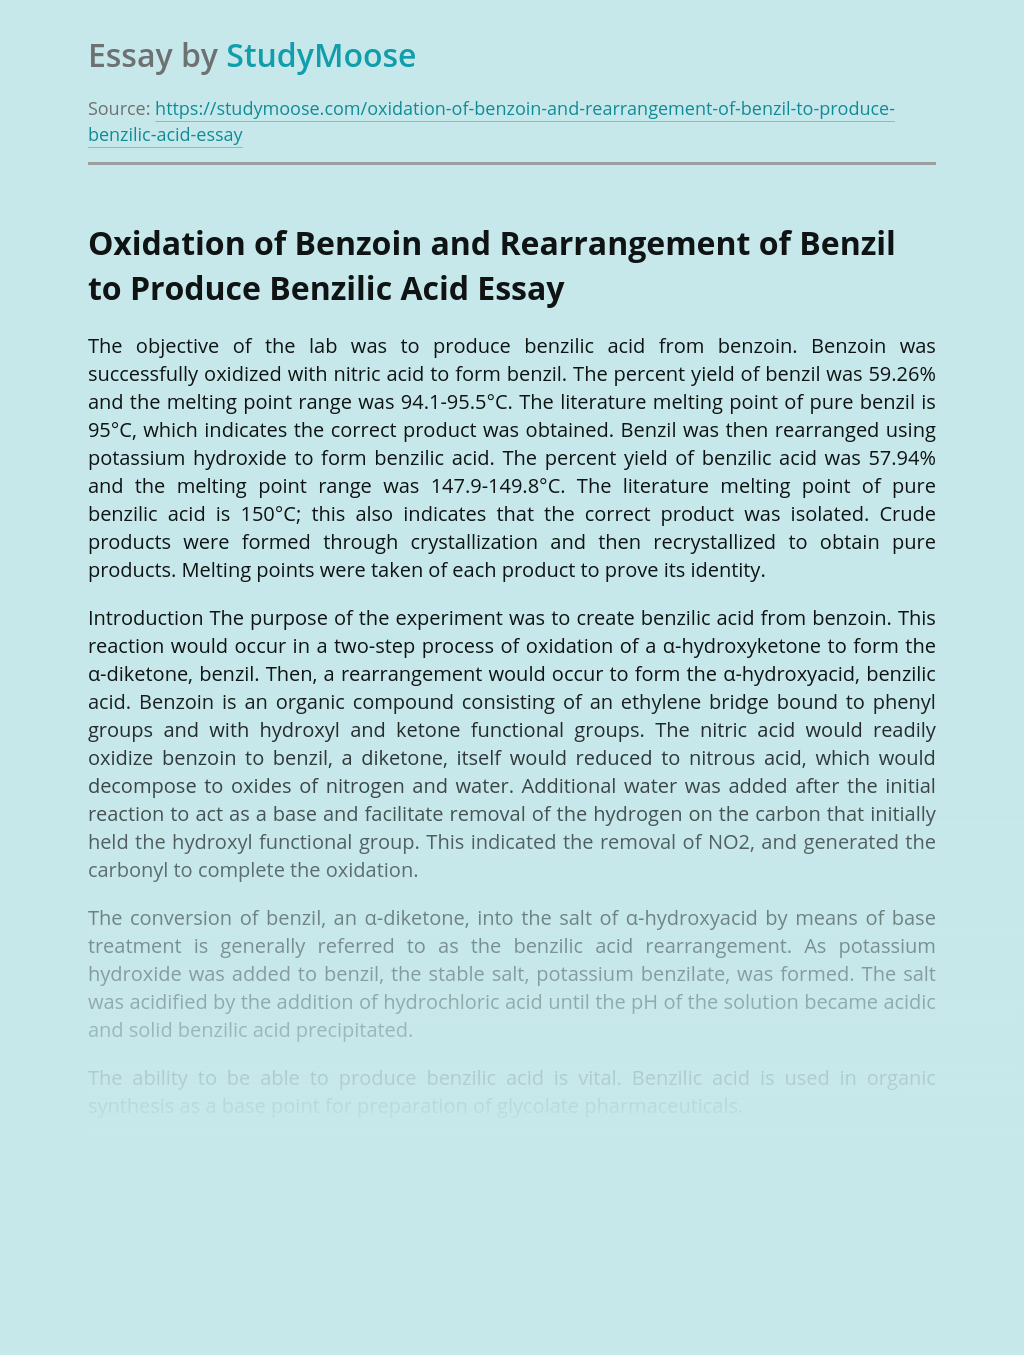 Oxidation of Benzoin and Rearrangement of Benzil to Produce Benzilic Acid